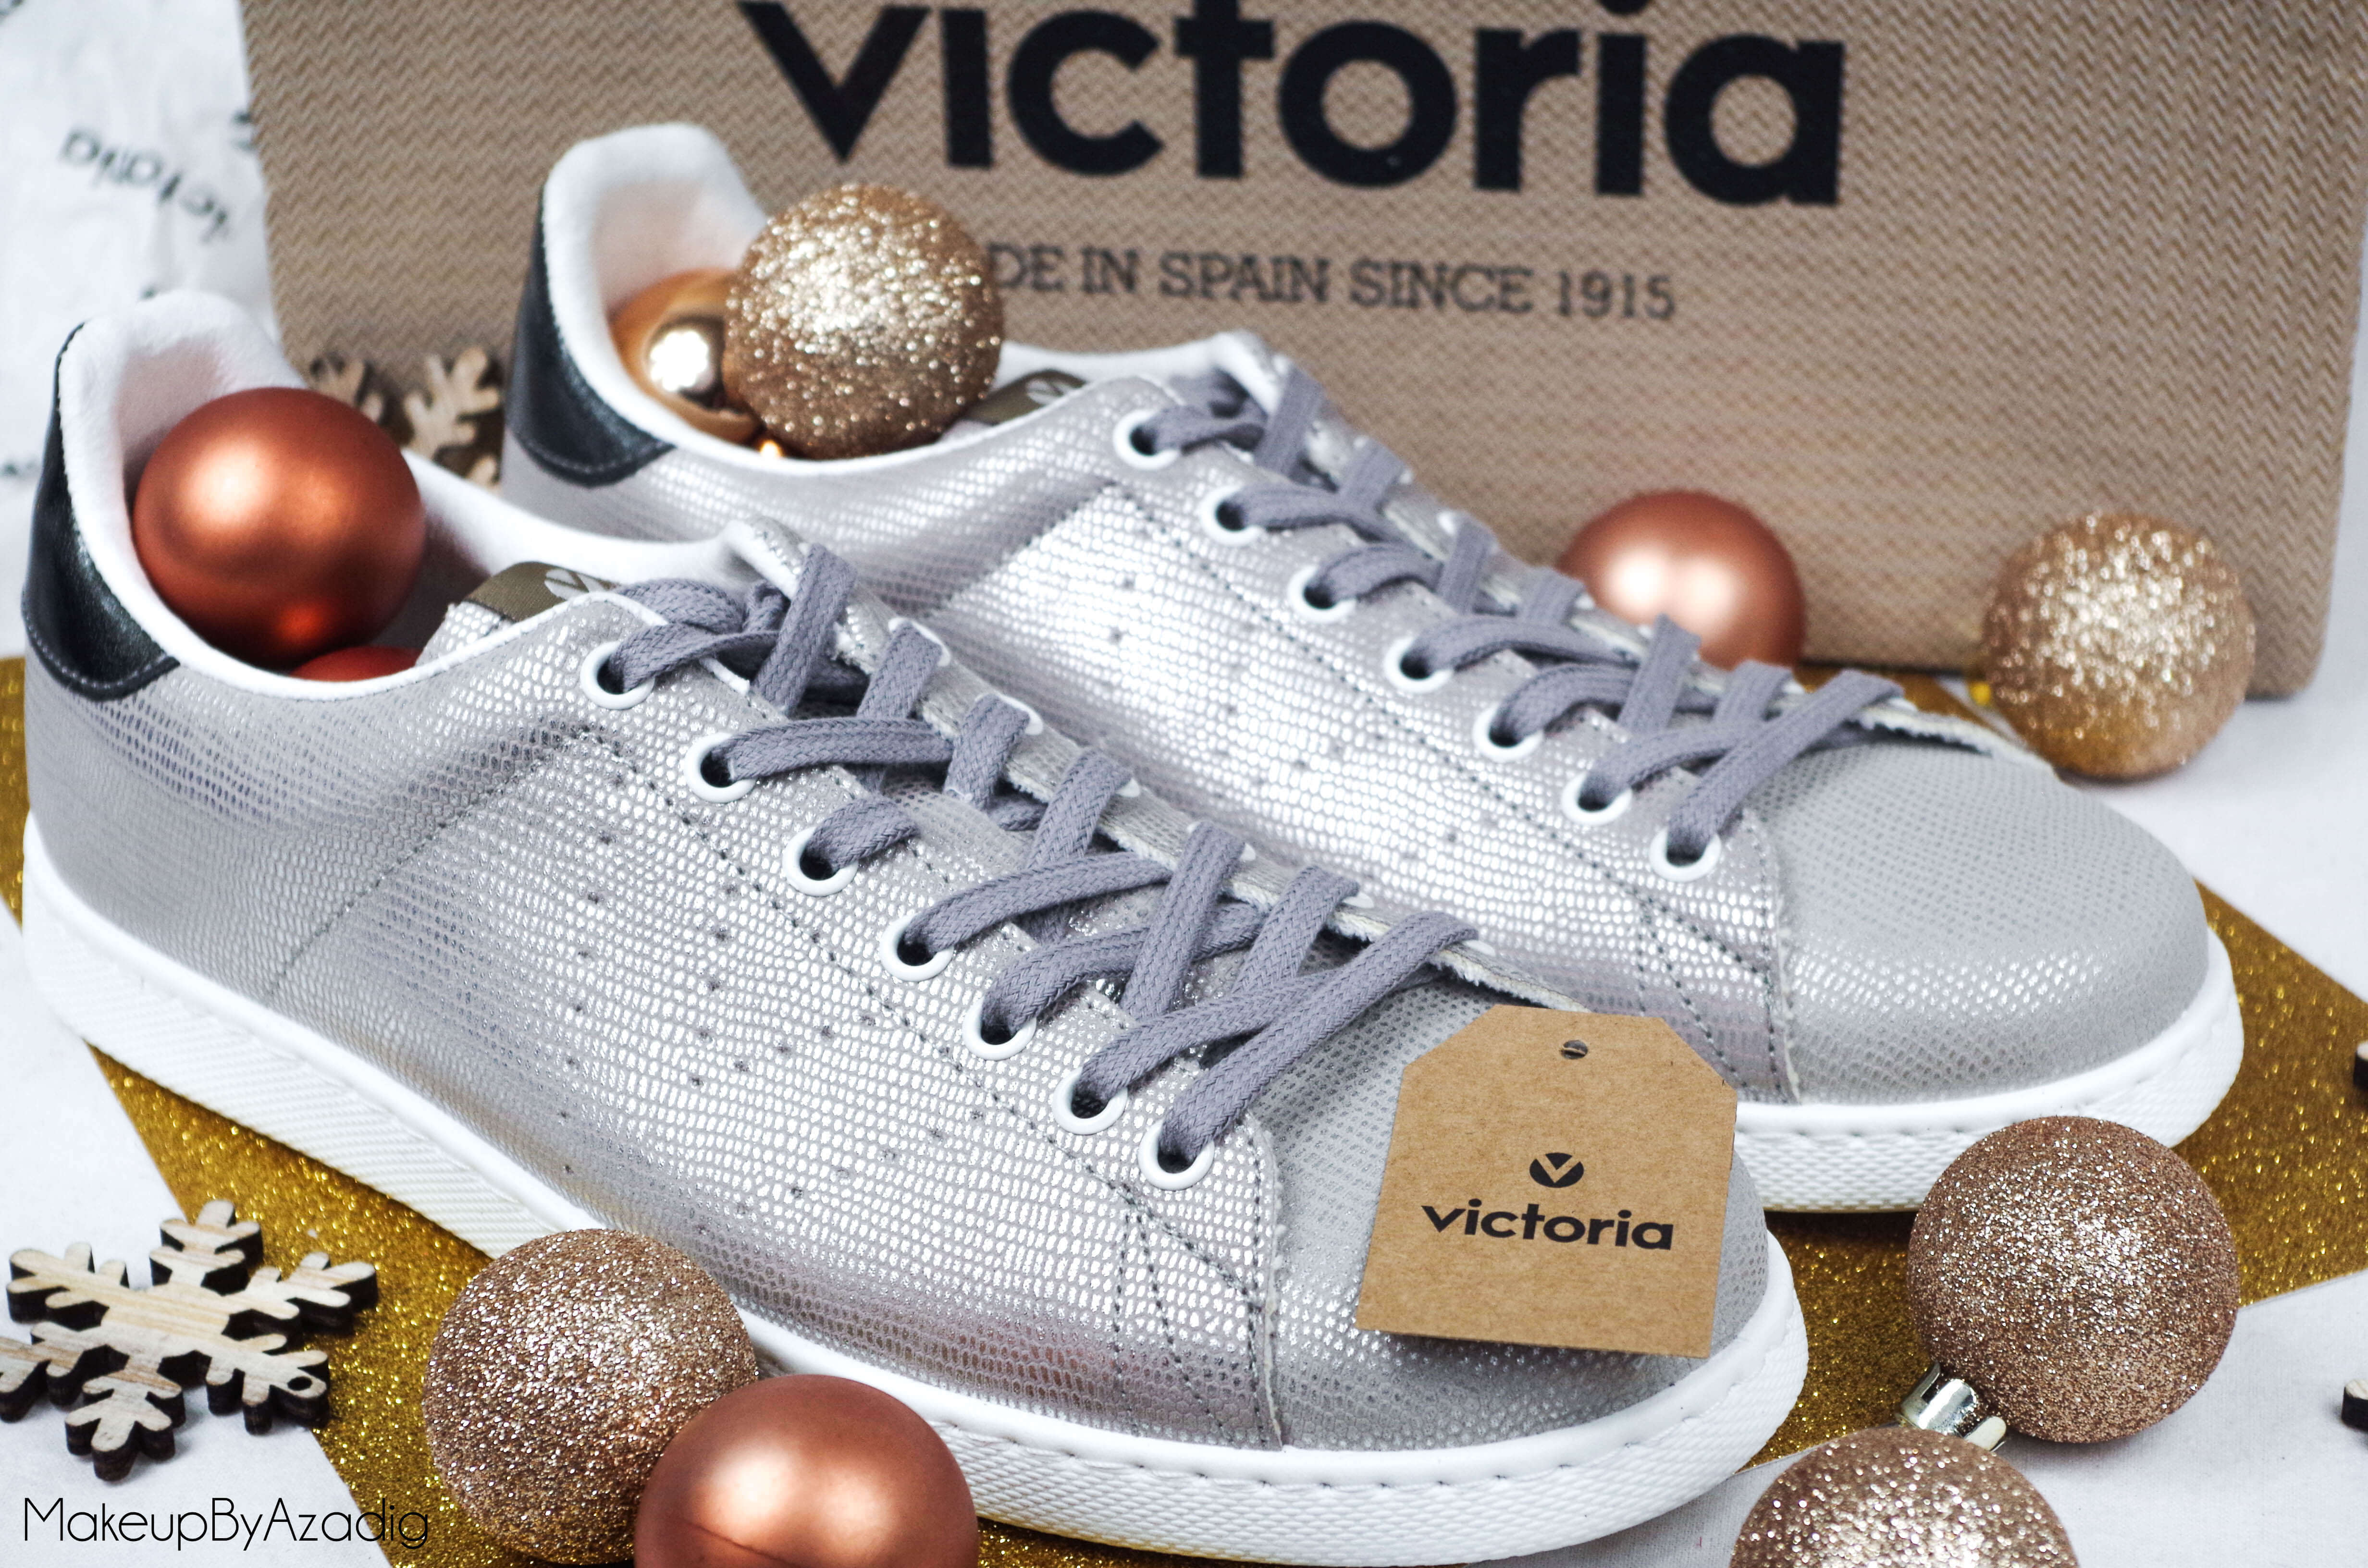 victoria-deportivo-basket-tejido-sneakers-usine-23-makeupbyazadig-troyes-paris-baskets-metallisees-prix-2